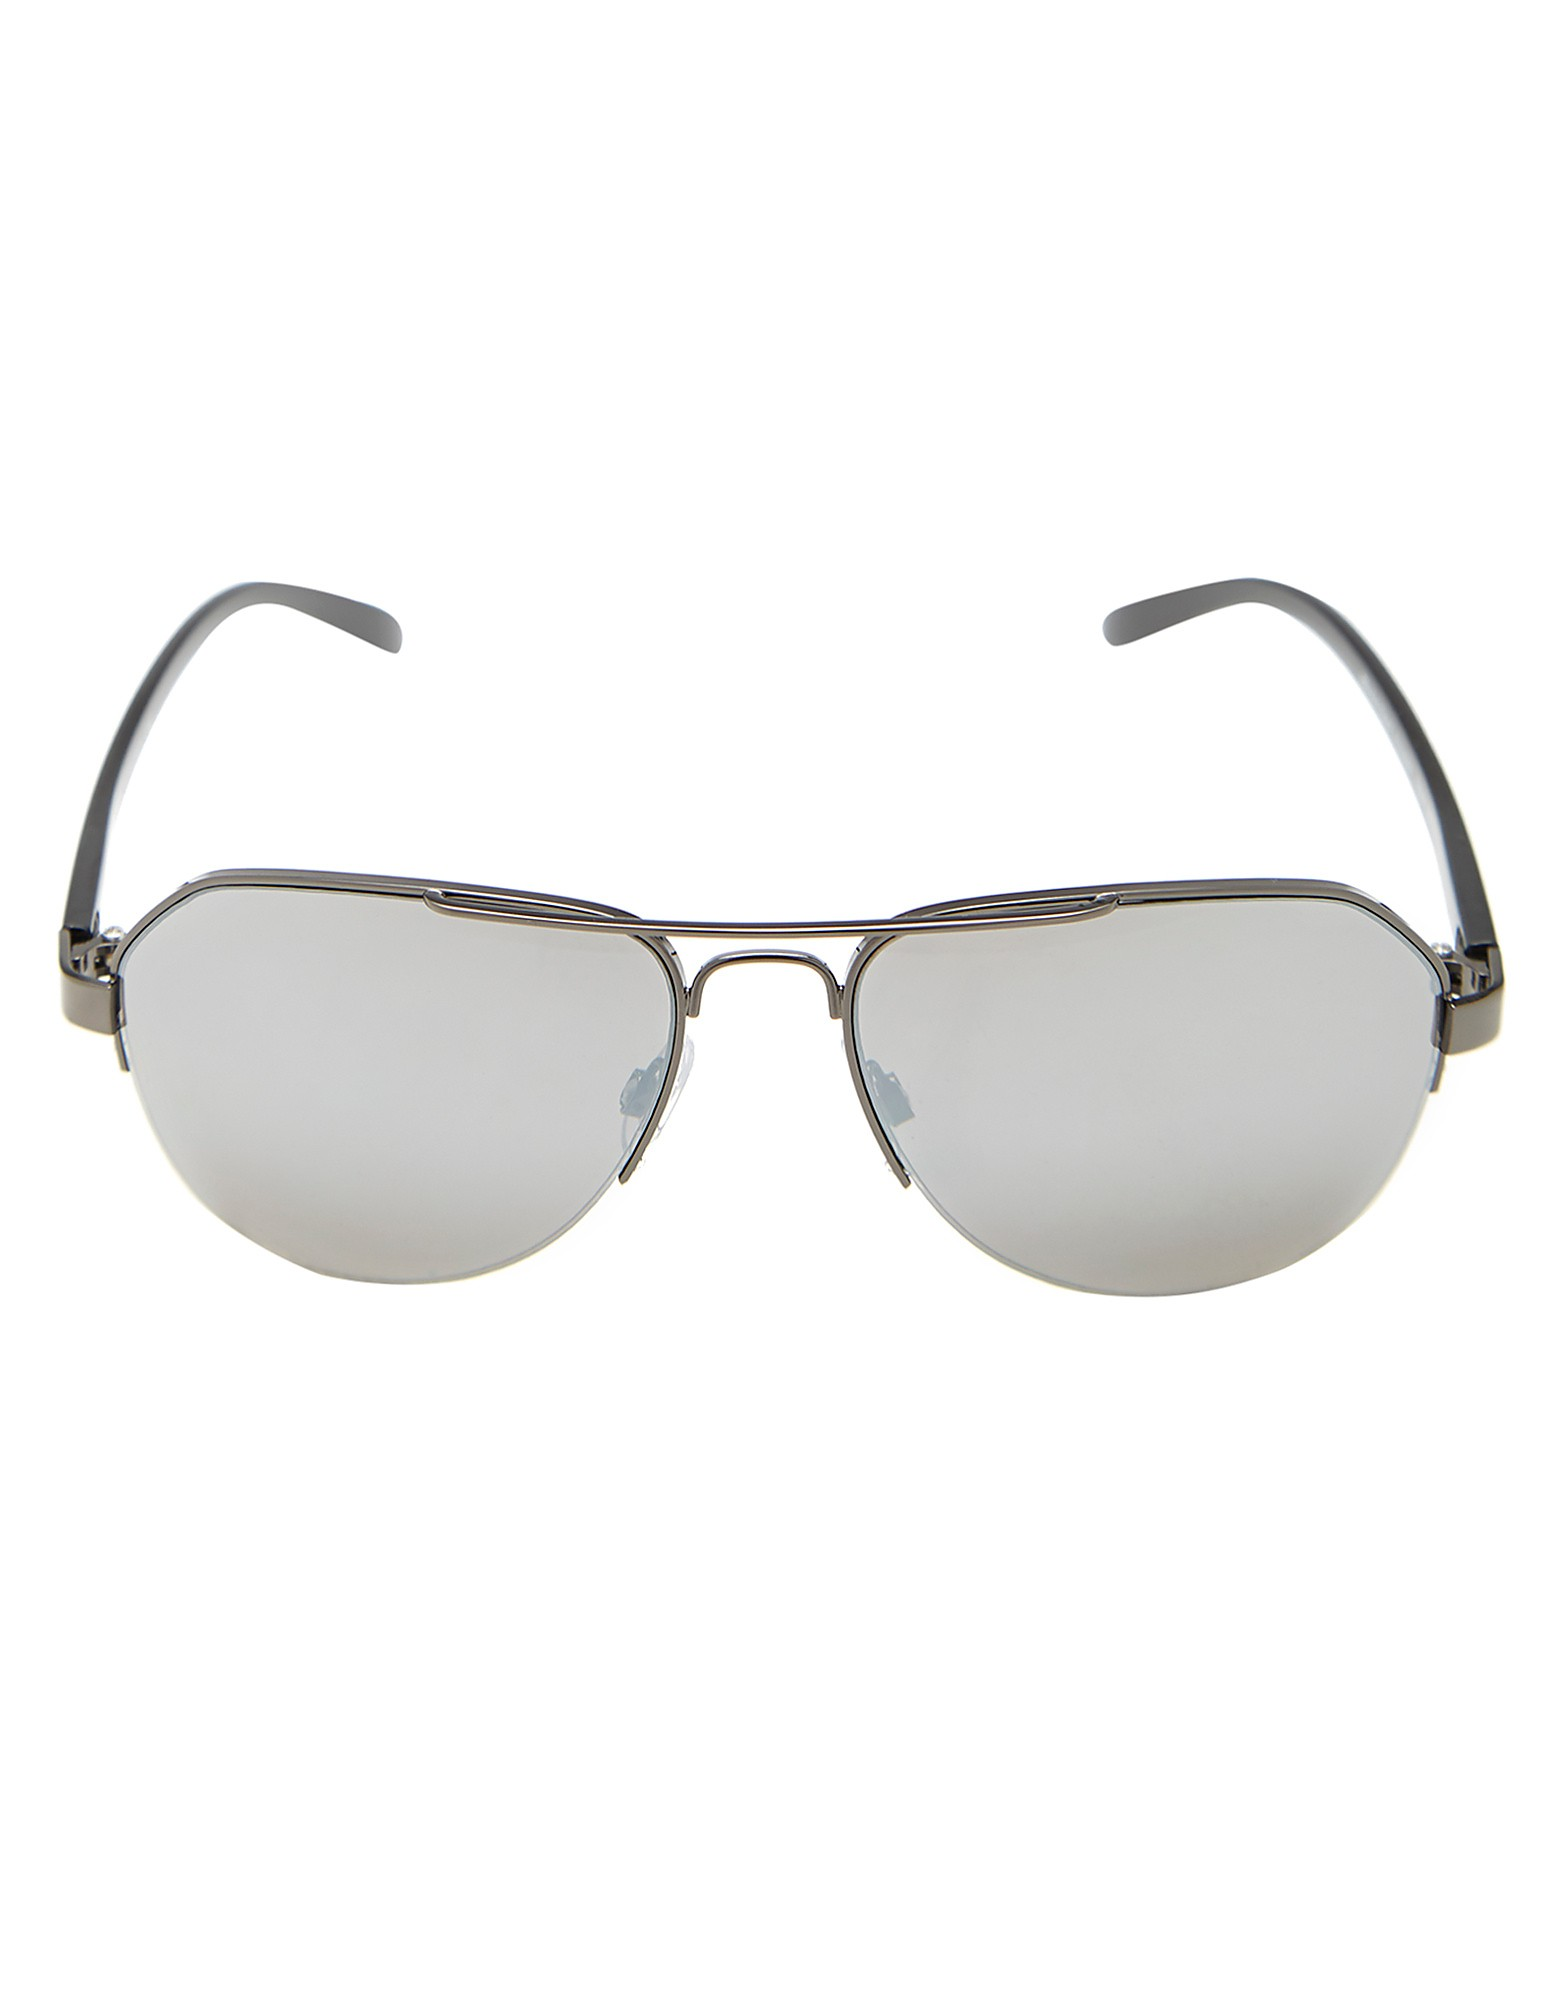 Brookhaven Fulham Sunglasses